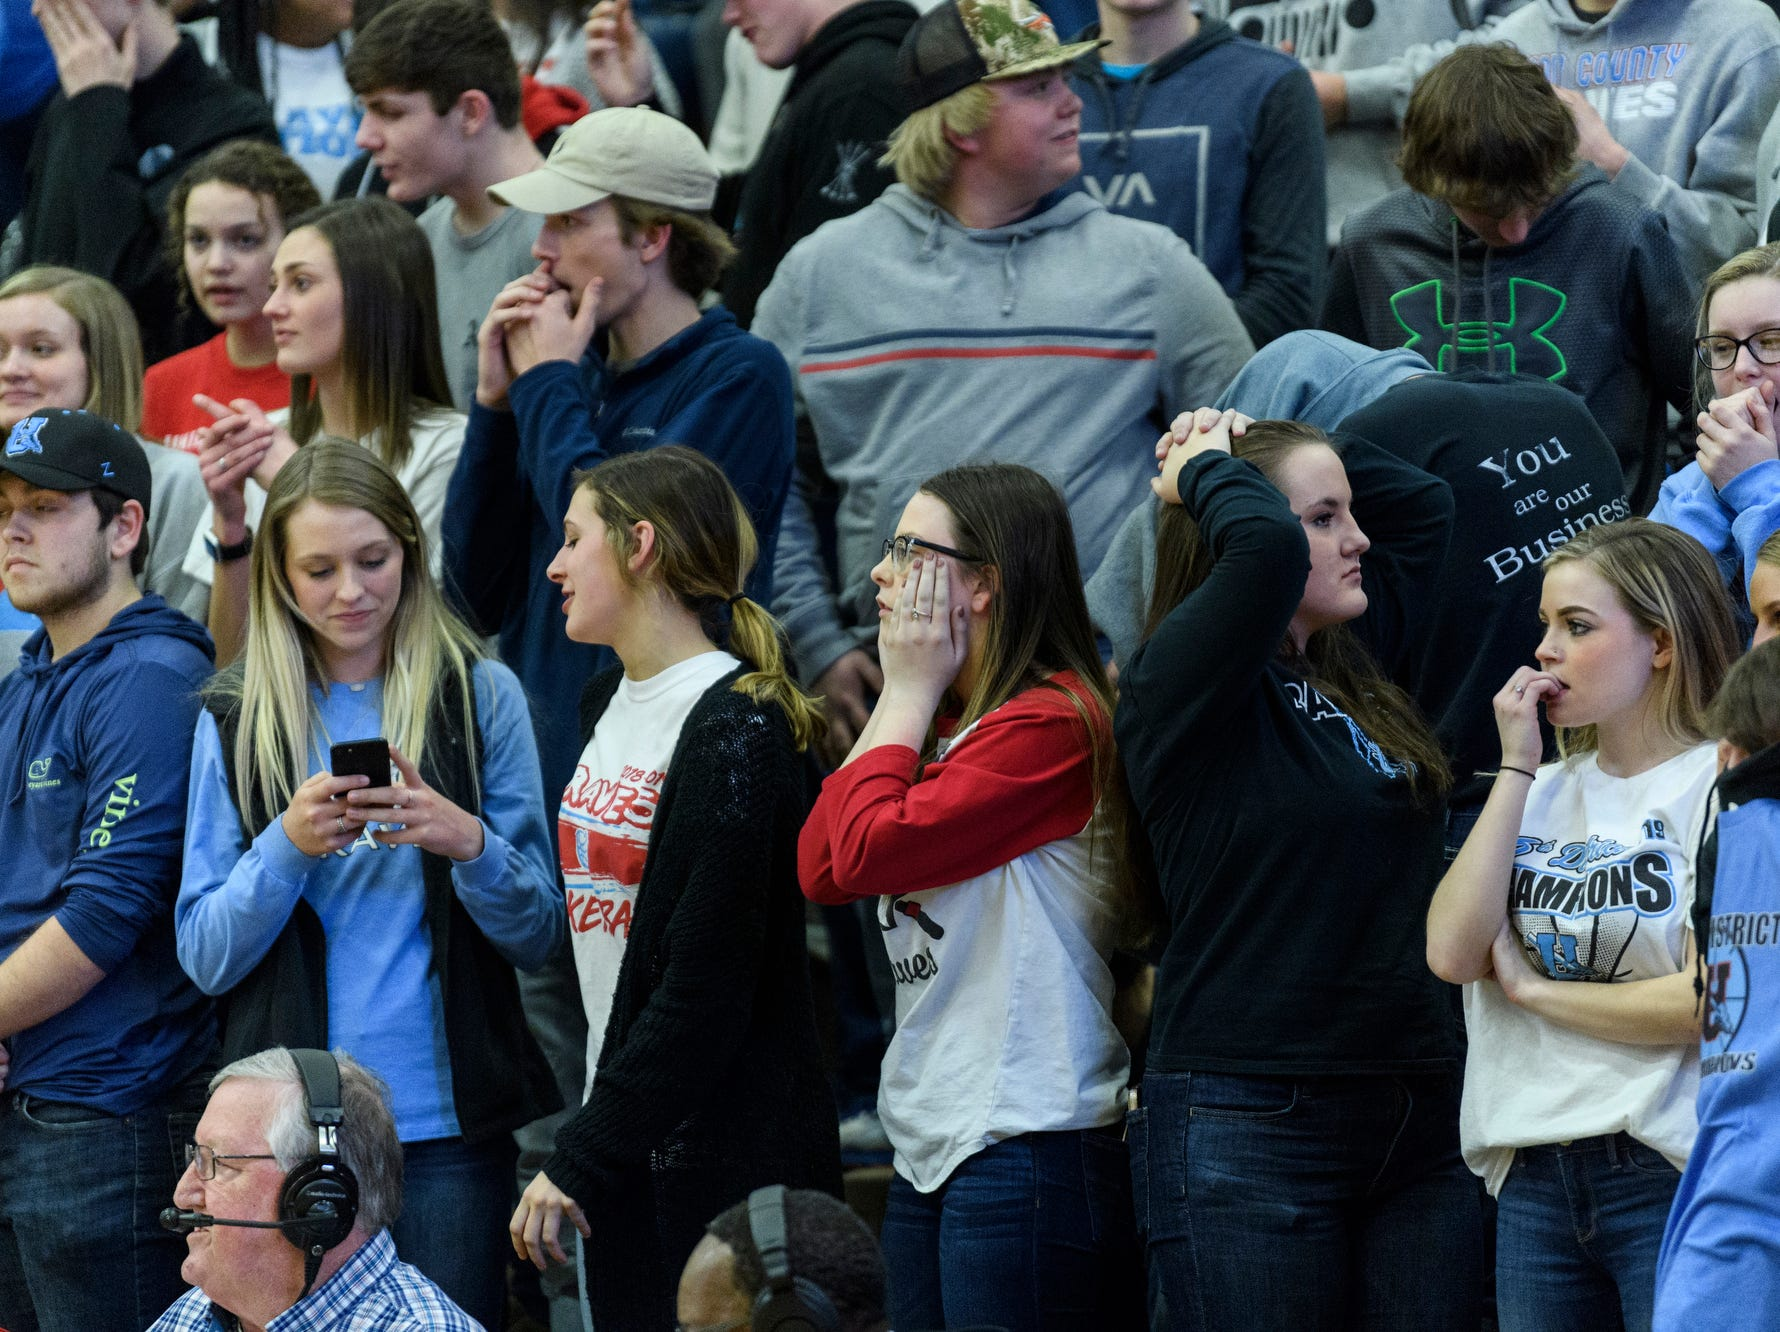 Union County Braves fans react to a close game with against the Caldwell County Tigers during the Boys Second Region tournament at Madisonville-North Hopkins High School in Madisonville, Ky., Monday, Feb. 25, 2019. The Tigers defeated the Braves 67-64 to advance to Friday's second region semifinal against University Heights Academy.